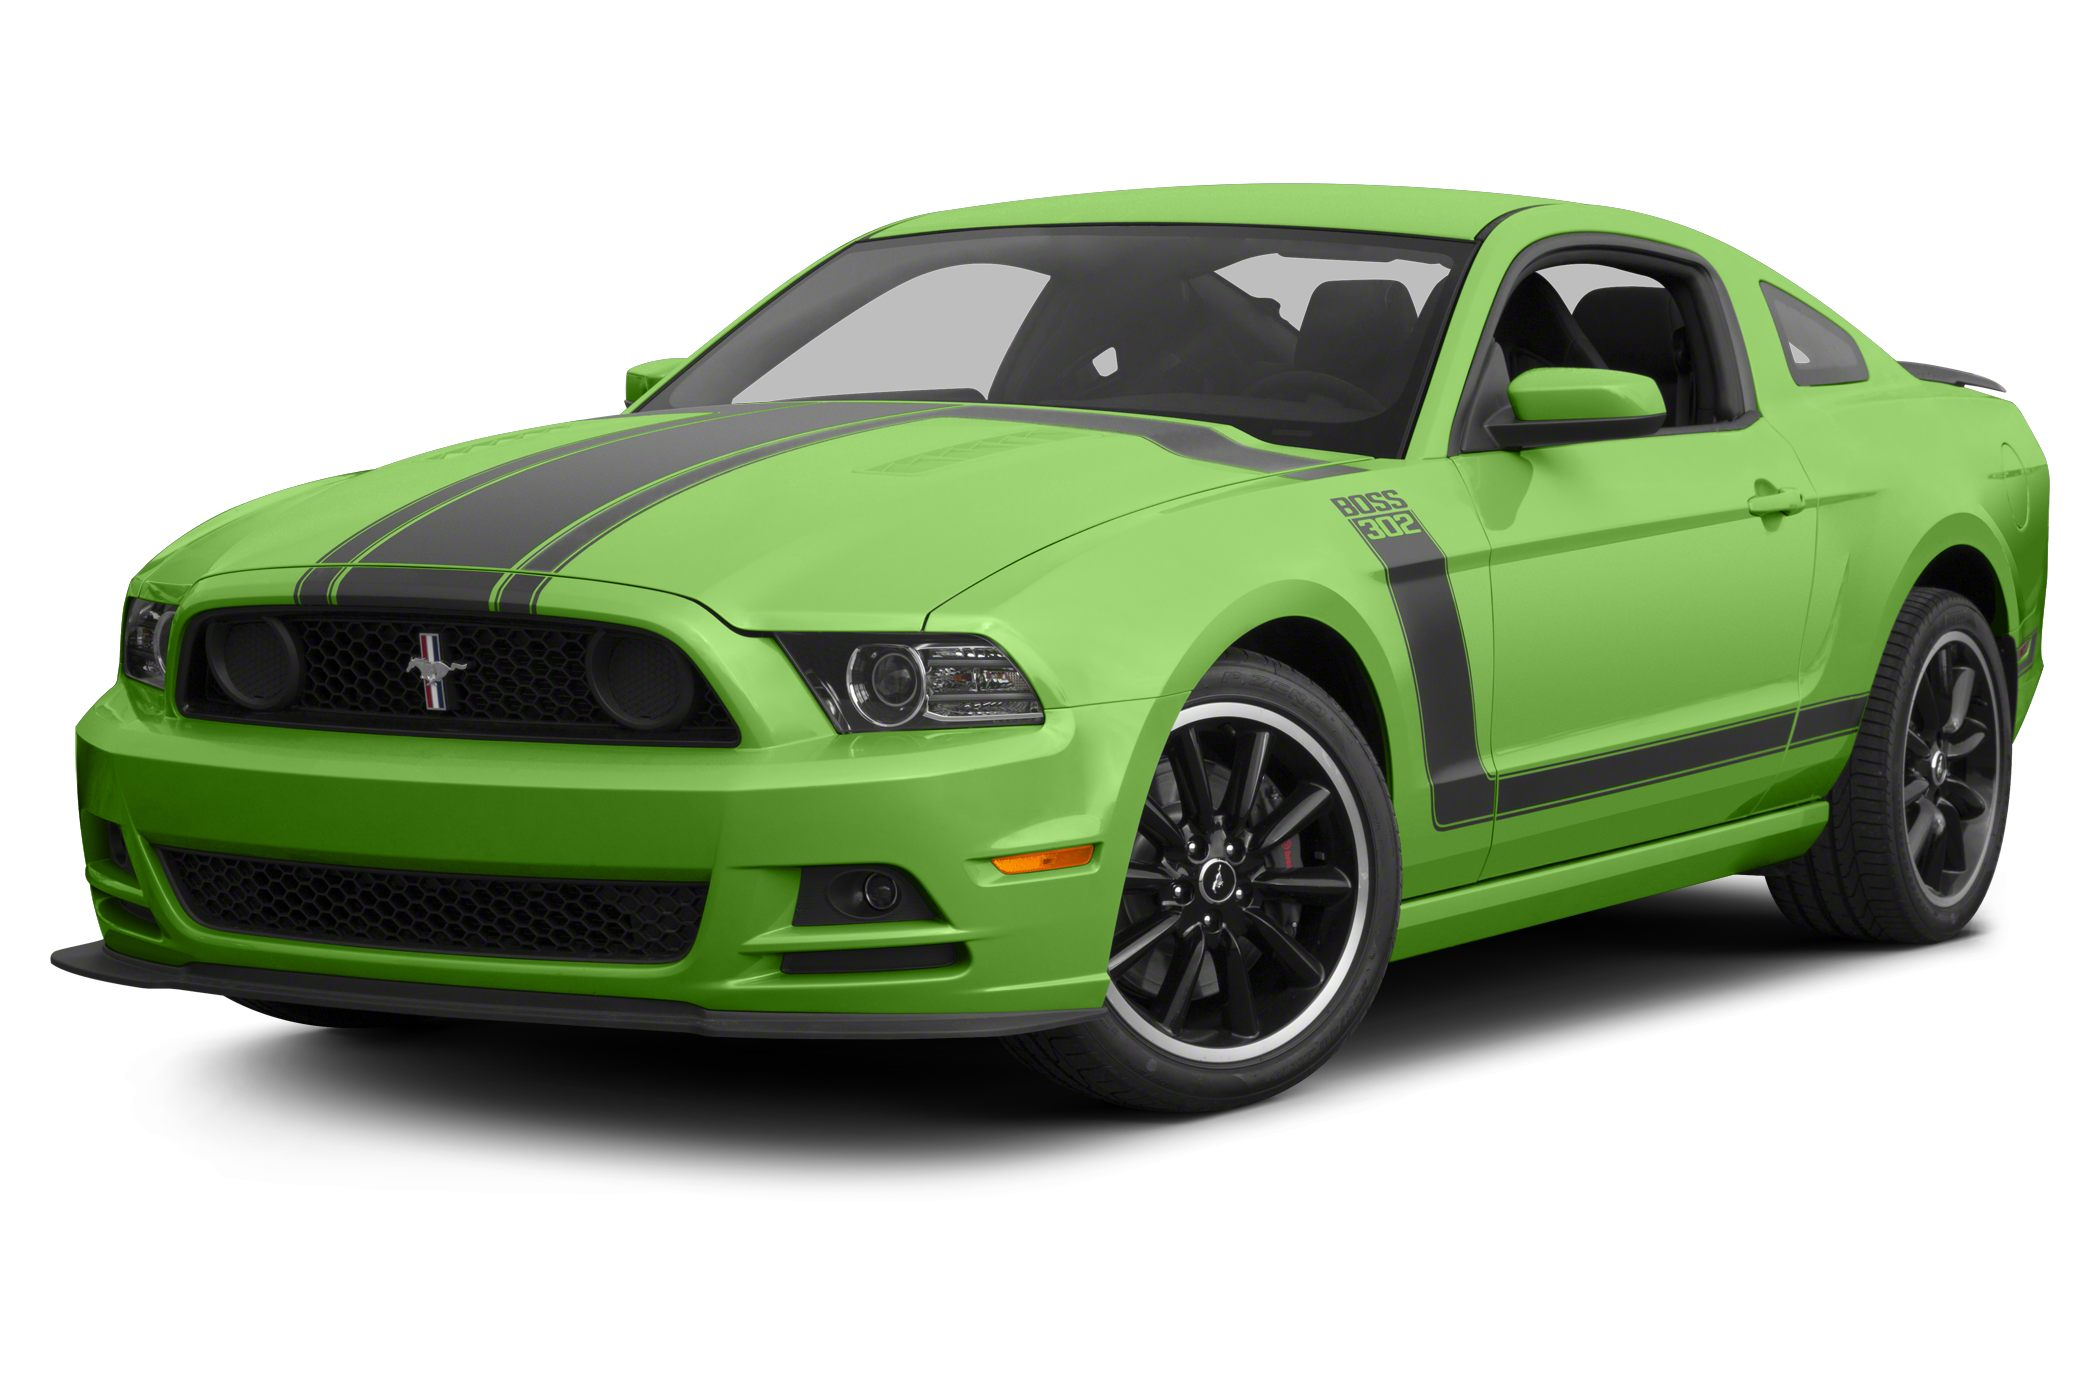 2013 Ford Mustang Boss 302 Coupe for sale in Cartersville for $41,991 with 14,097 miles